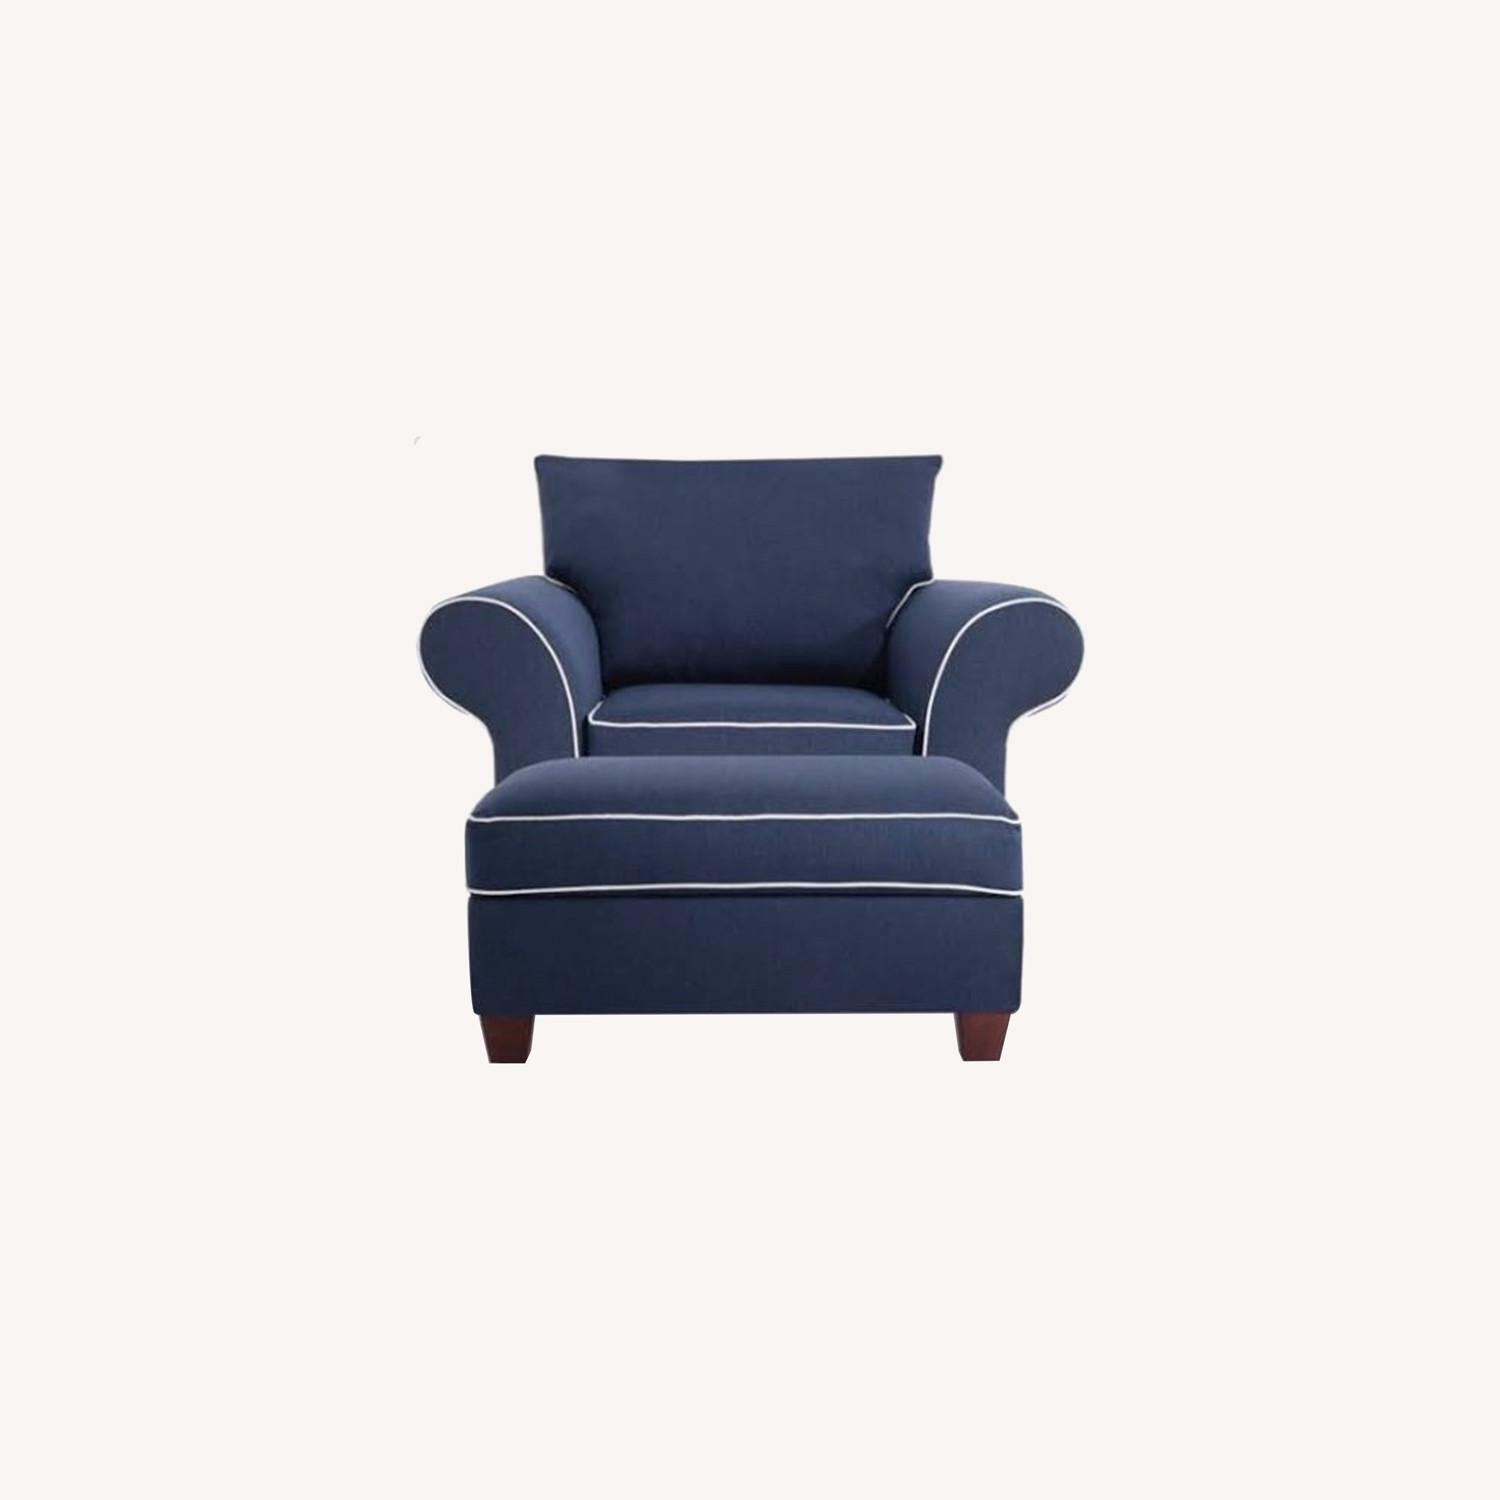 Bob's Discount Furniture Armchair with Ottoman - image-0